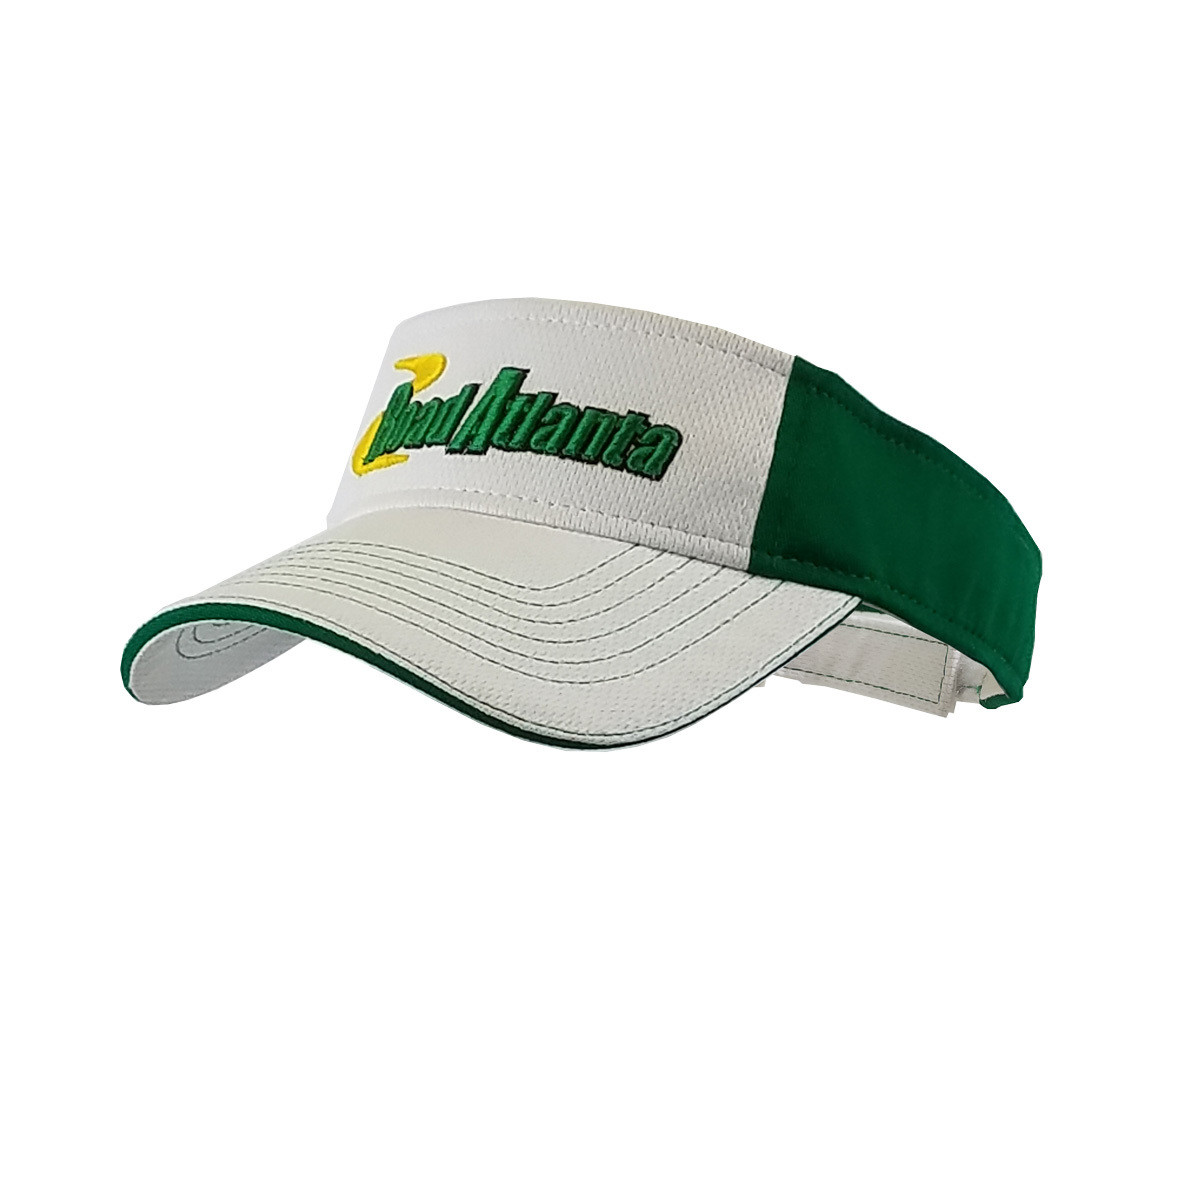 Road Atlanta White/ Kelly Green Visor